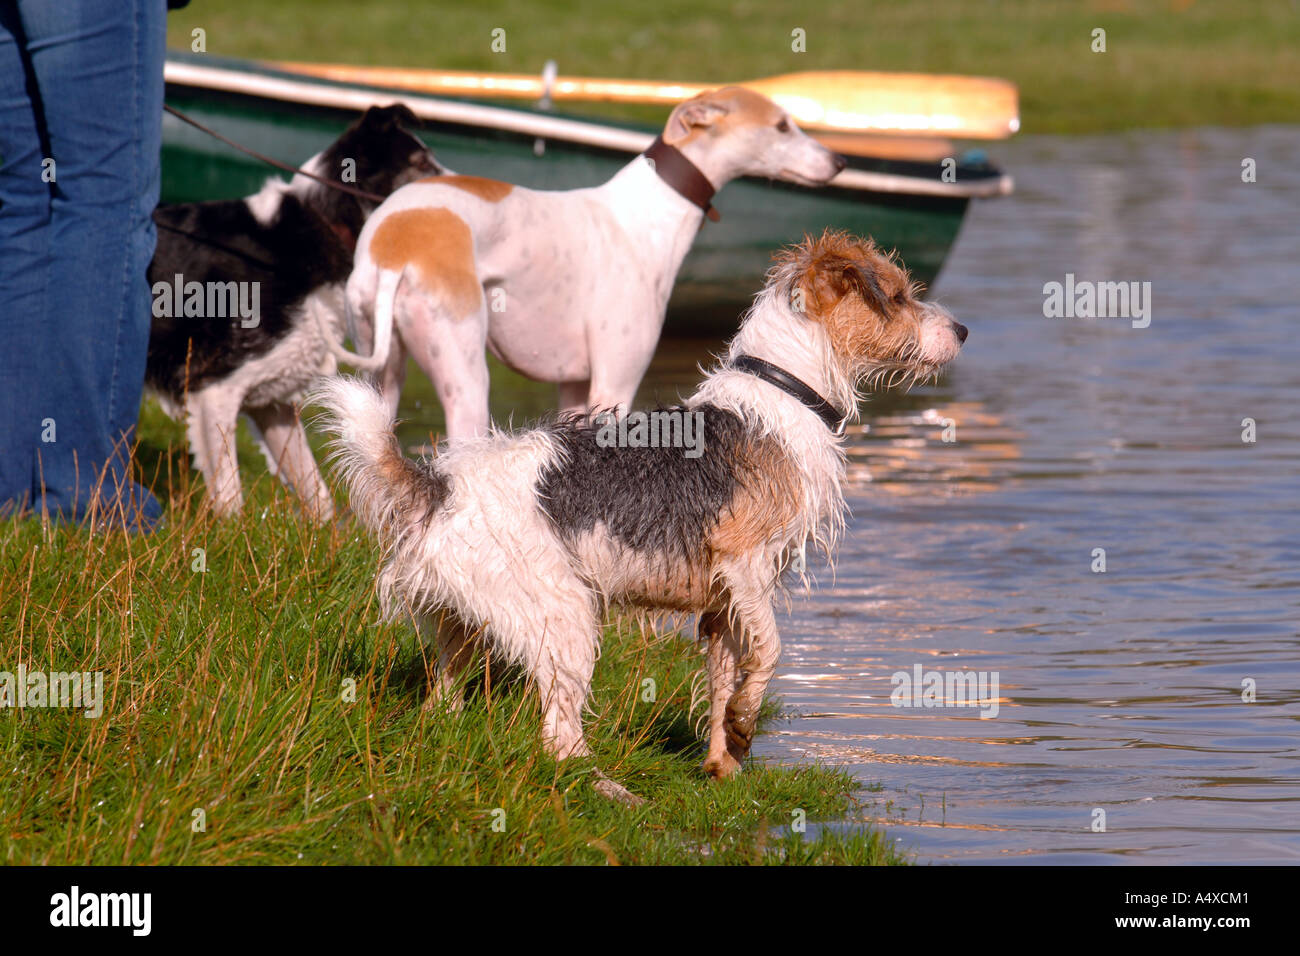 THREE DOGS PLAYING ON THE SHORES OF A LAKE UK - Stock Image